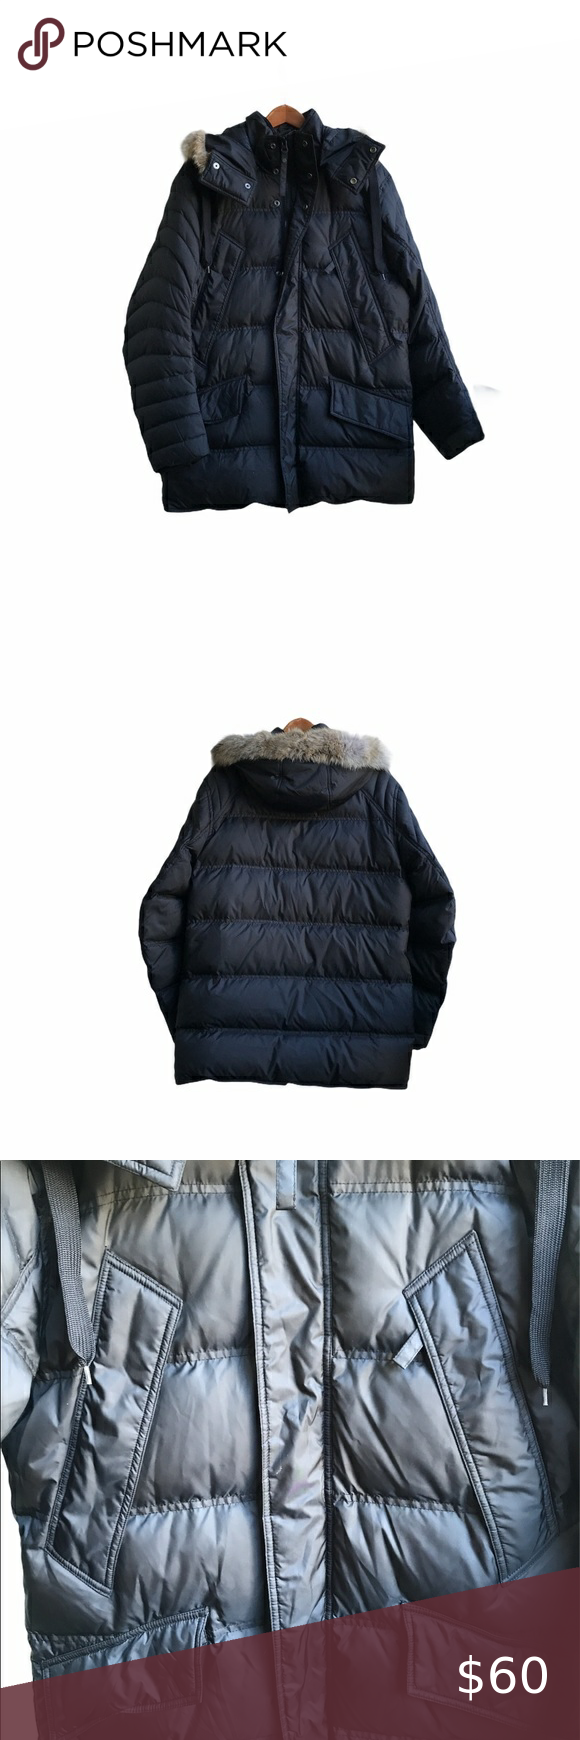 Marc New York Down Puffer Coat With Hood Puffer Coat With Hood Marc New York Puffer Coat [ 1740 x 580 Pixel ]